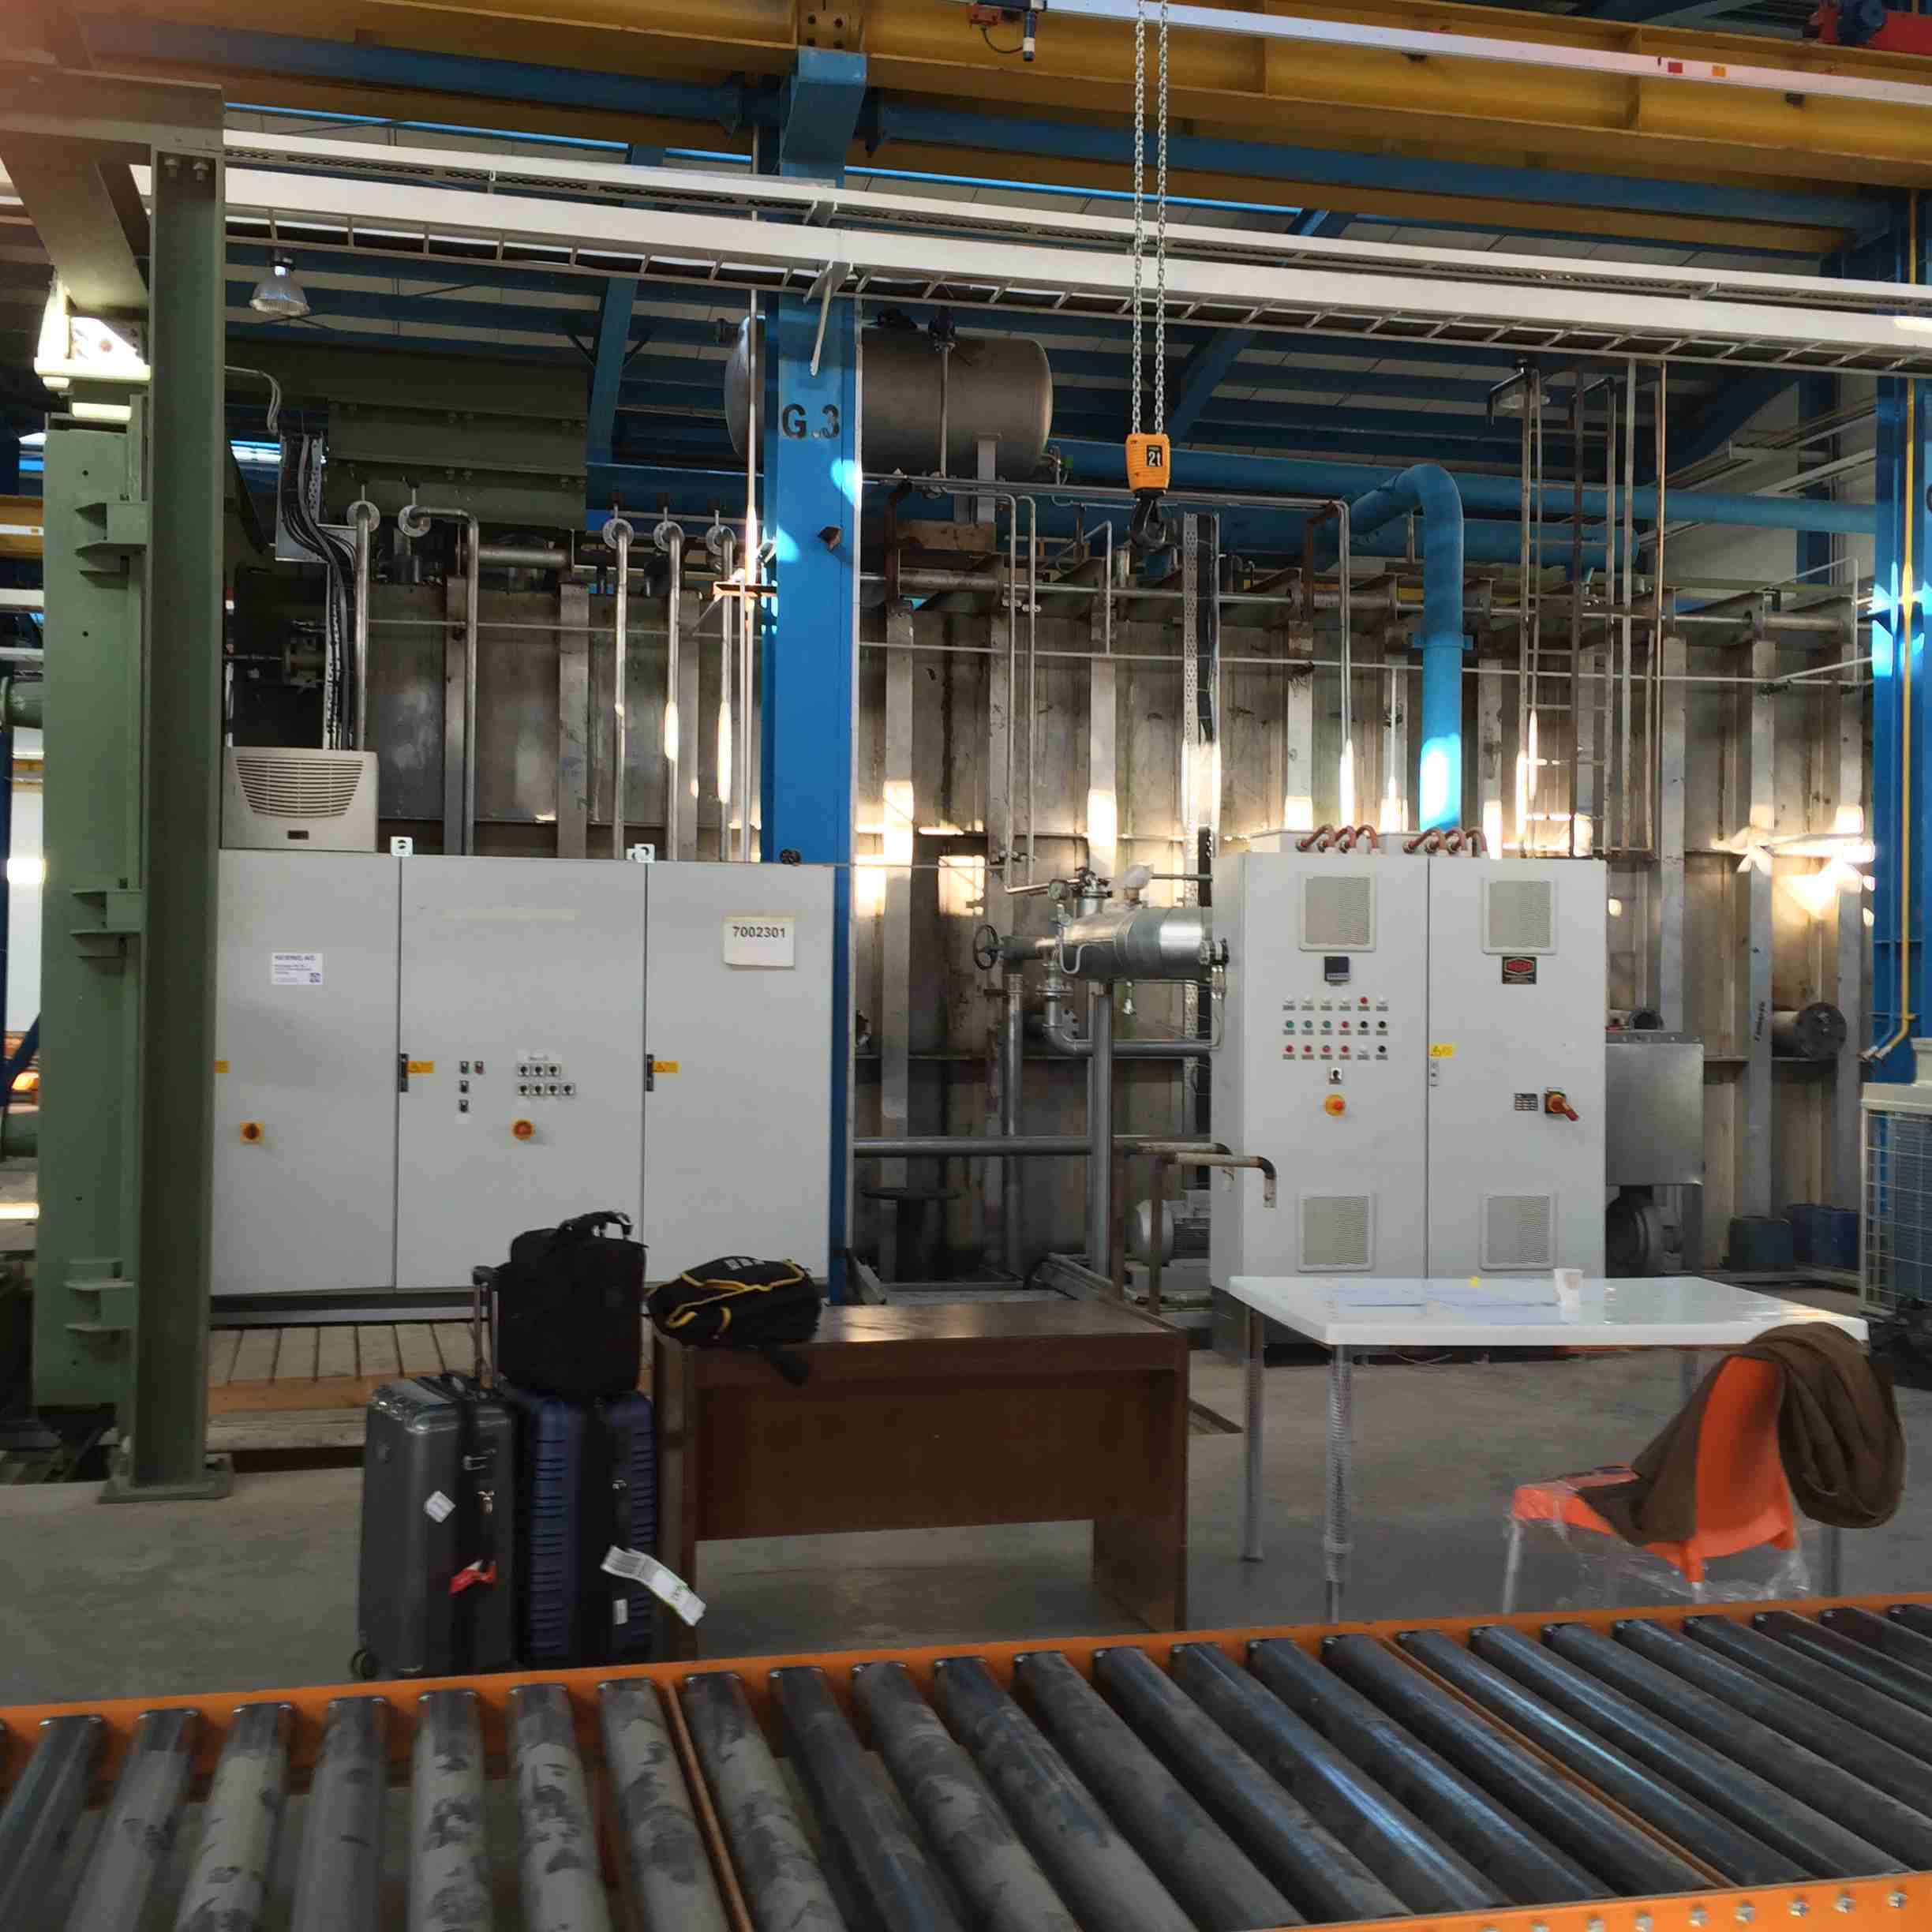 Hering transformer vacuum drying oven control panels 3